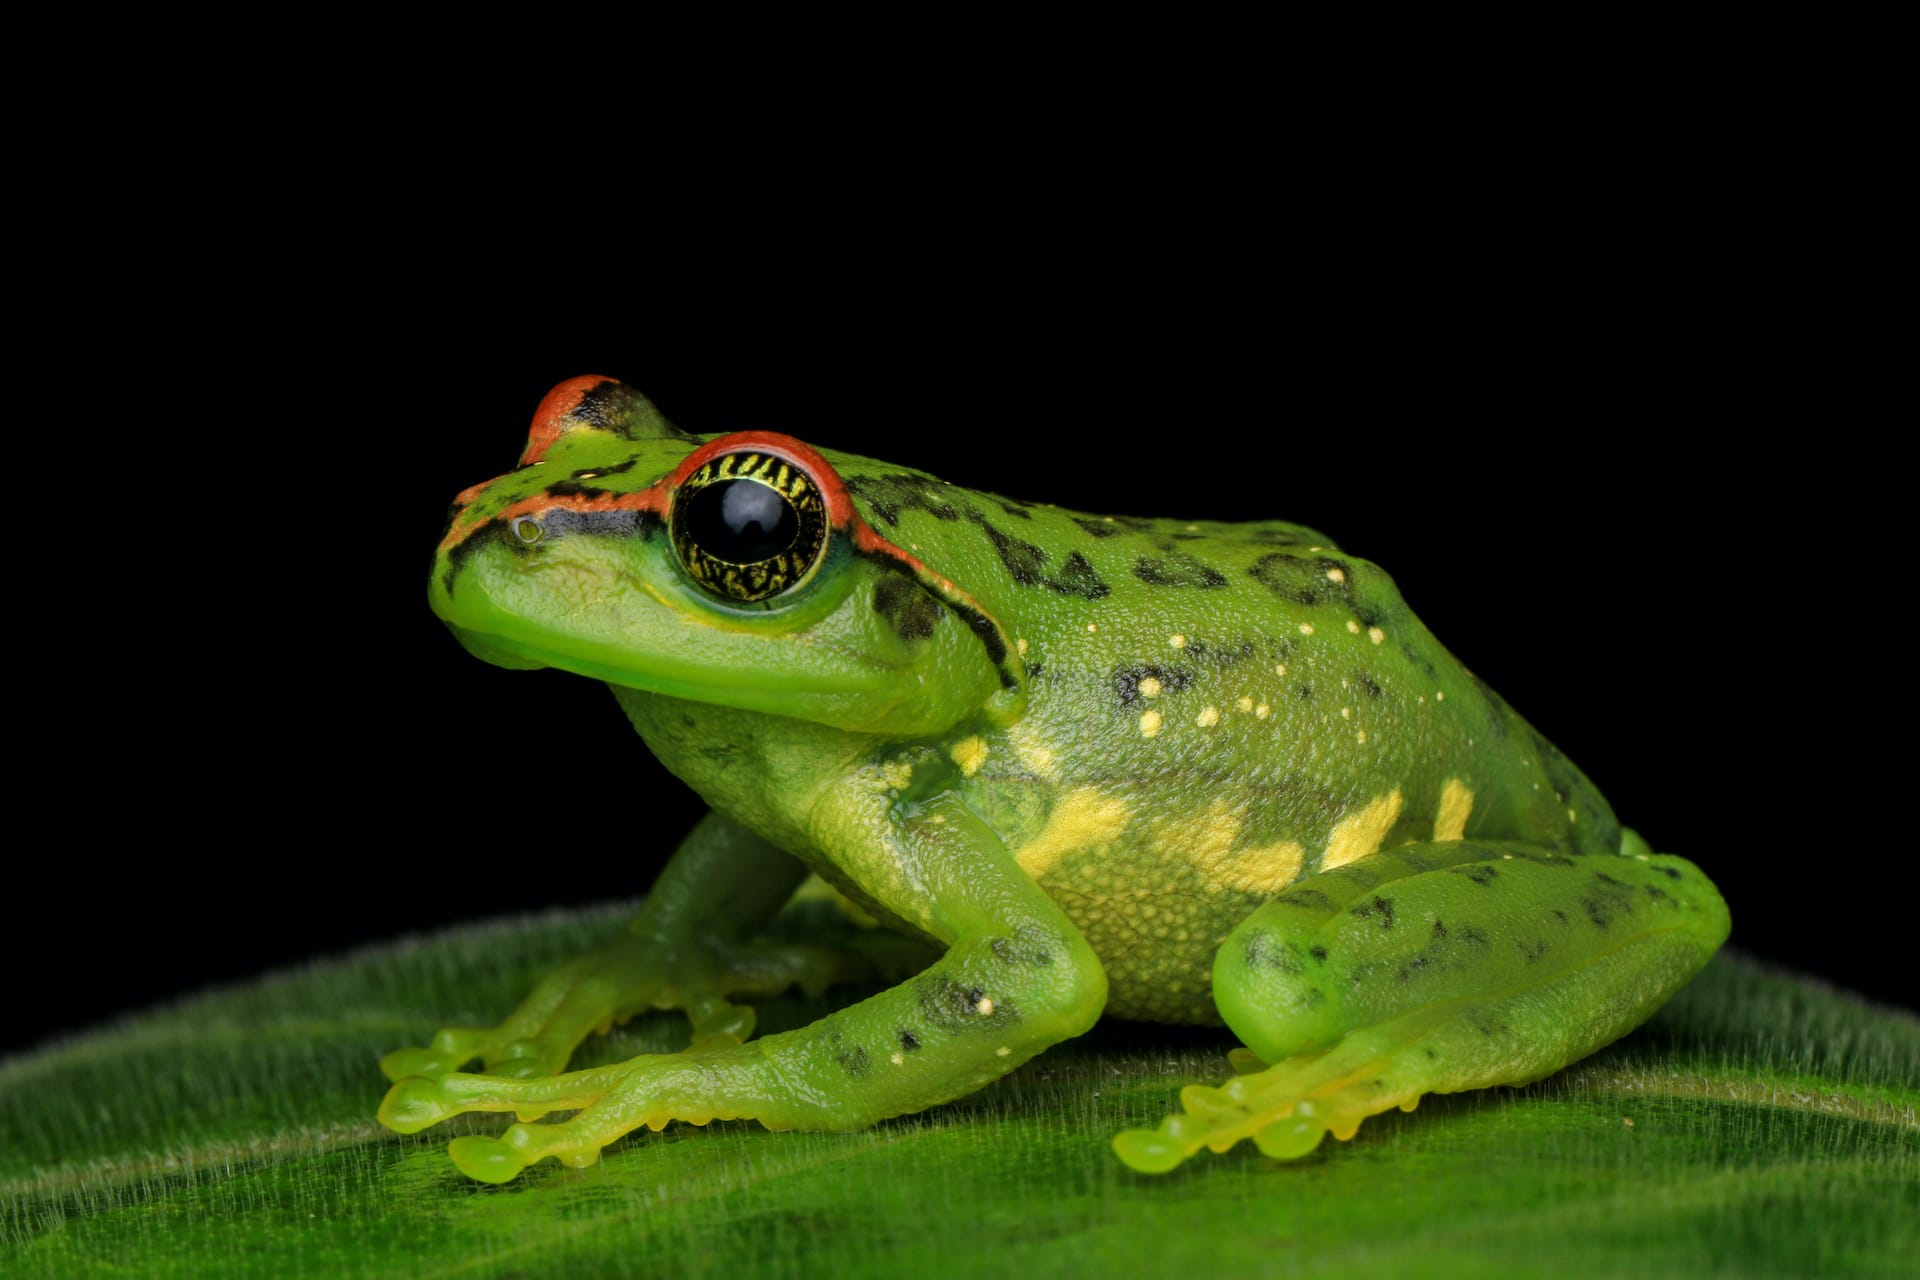 The star-eyed tree frog (Ghatixalus asterops) has a golden star-like pattern on its iris. Found in the southern Western Ghats, this frog is green as a juvenile and grey-brown with patches as an adult. Photo: Sebinster Francis